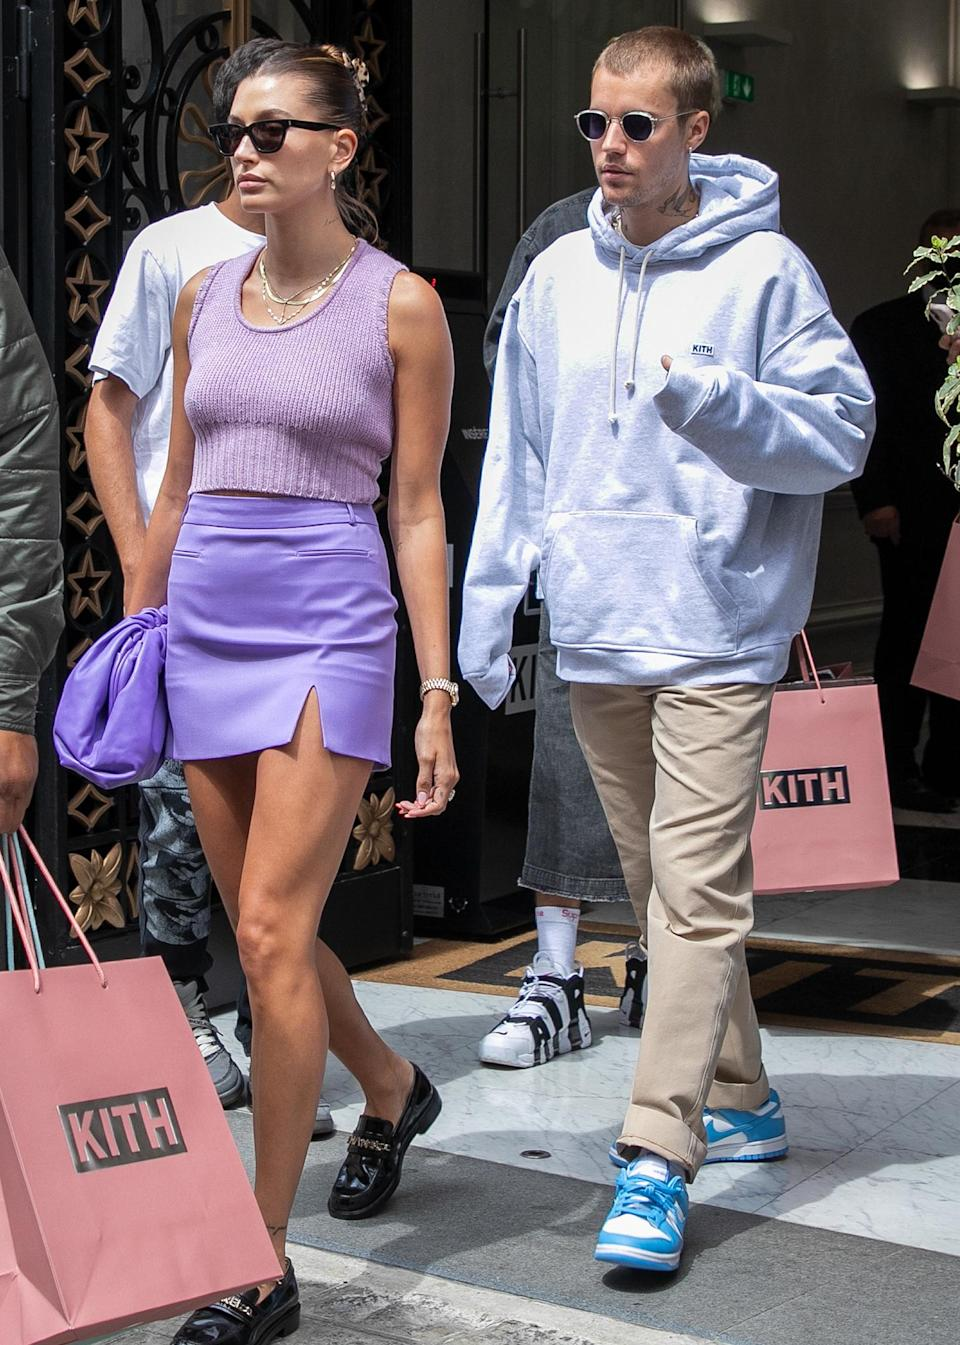 <p>Justin and Hailey Bieber are in sync on June 21 after a stop at the KITH store in Paris.</p>